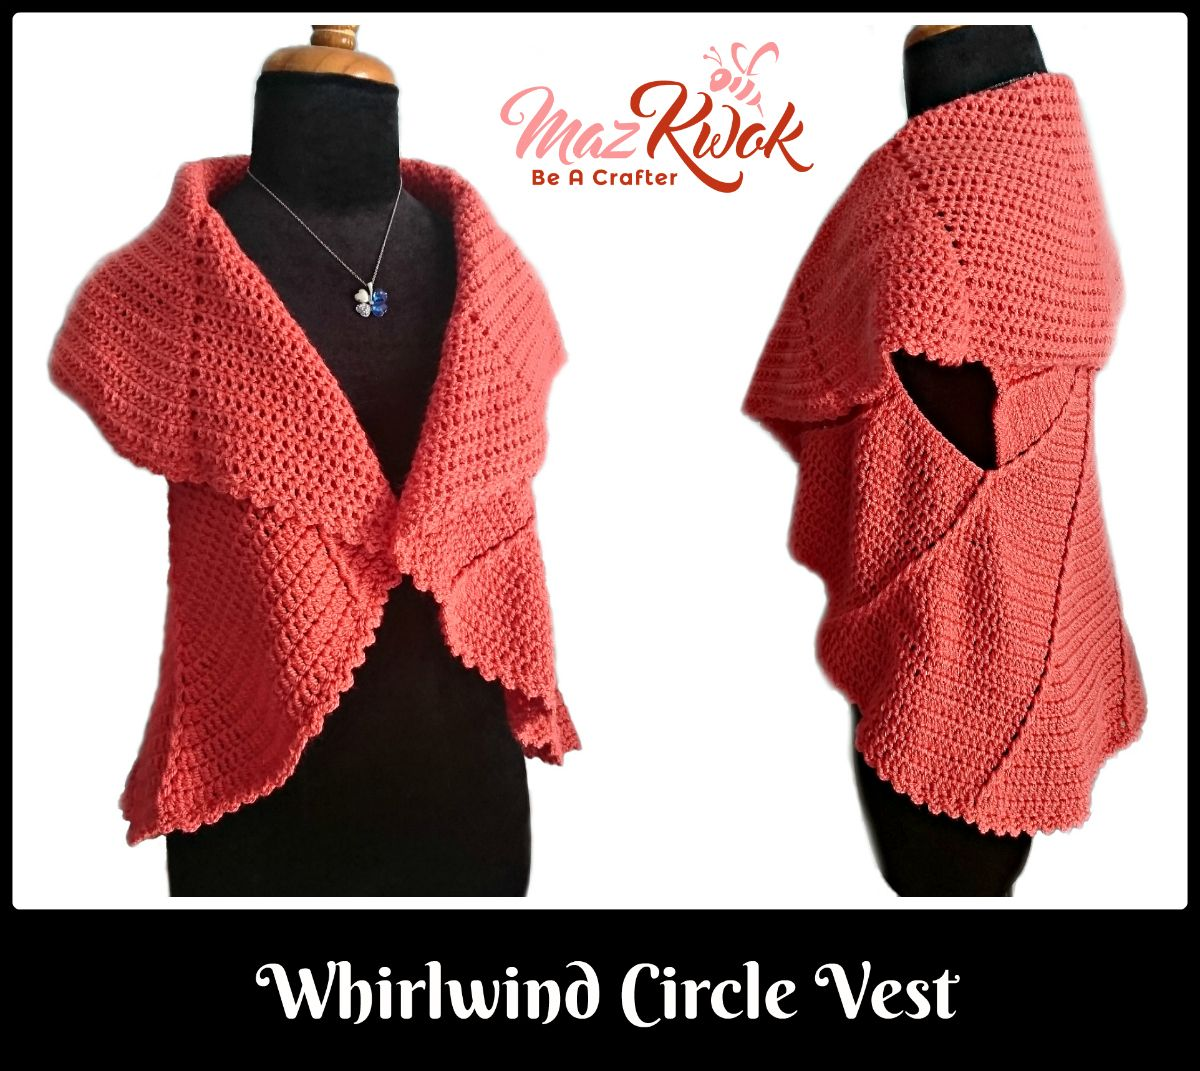 Crochet circle vest crochet whirlwind circle vest crochet circle crochet circle vest crochet whirlwind circle vest crochet circle vest free patterncrochet bankloansurffo Choice Image